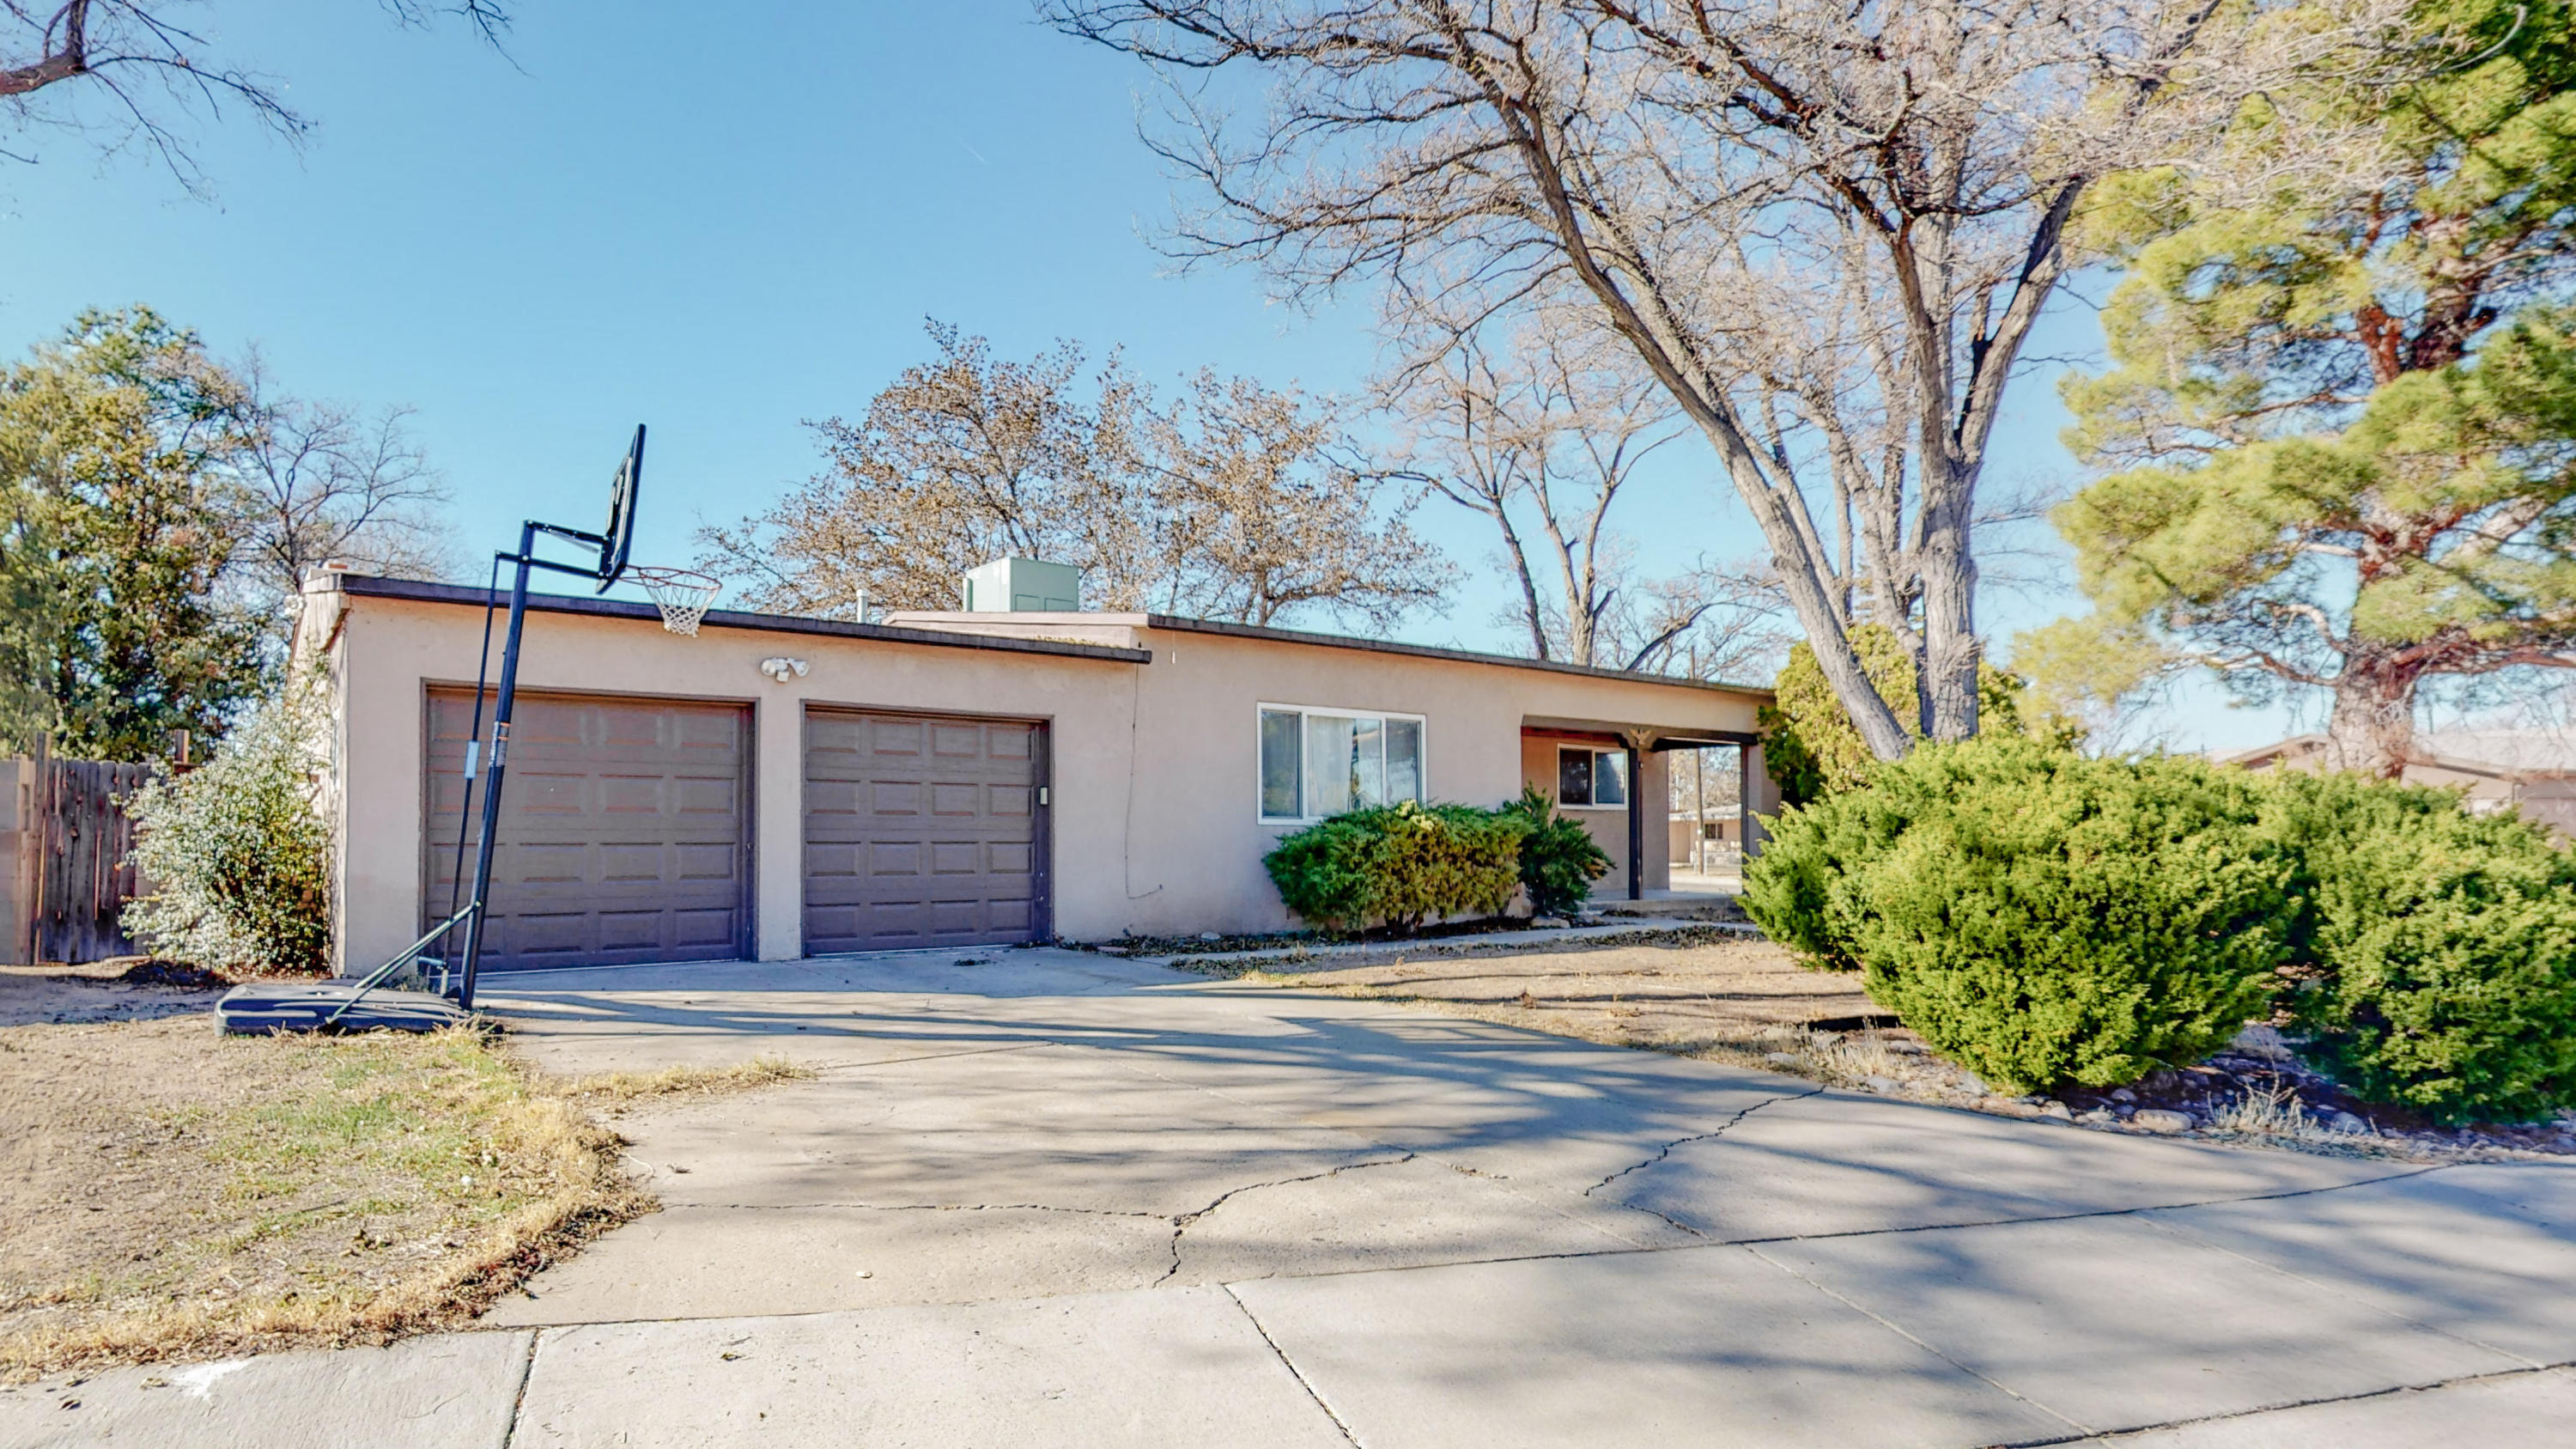 Beautifully updated home in convenient NE Uptown area near Grisham Park. Home sits on large corner lot with mature trees and features 3 bedrooms with a possible 4th bedroom/office/or 2nd living area with Kiva fireplace. Refrigerated Air Combo Unit Updated kitchen with granite counter tops and stainless appliances including full size stackable washer & dryer included! Newer windows, light fixtures and ceiling fans. Kitchen has open concept to living and separate dining area. Beautiful wood floors throughout and ceramic tiled kitchen & baths. Wood floors in main living areas refinished Nov '17! Over-sized two car garage with attic storage. Come see this amazing opportunity before it's gone and make this your new home! Easy Access to I-25 and I-40 shopping and so much more!